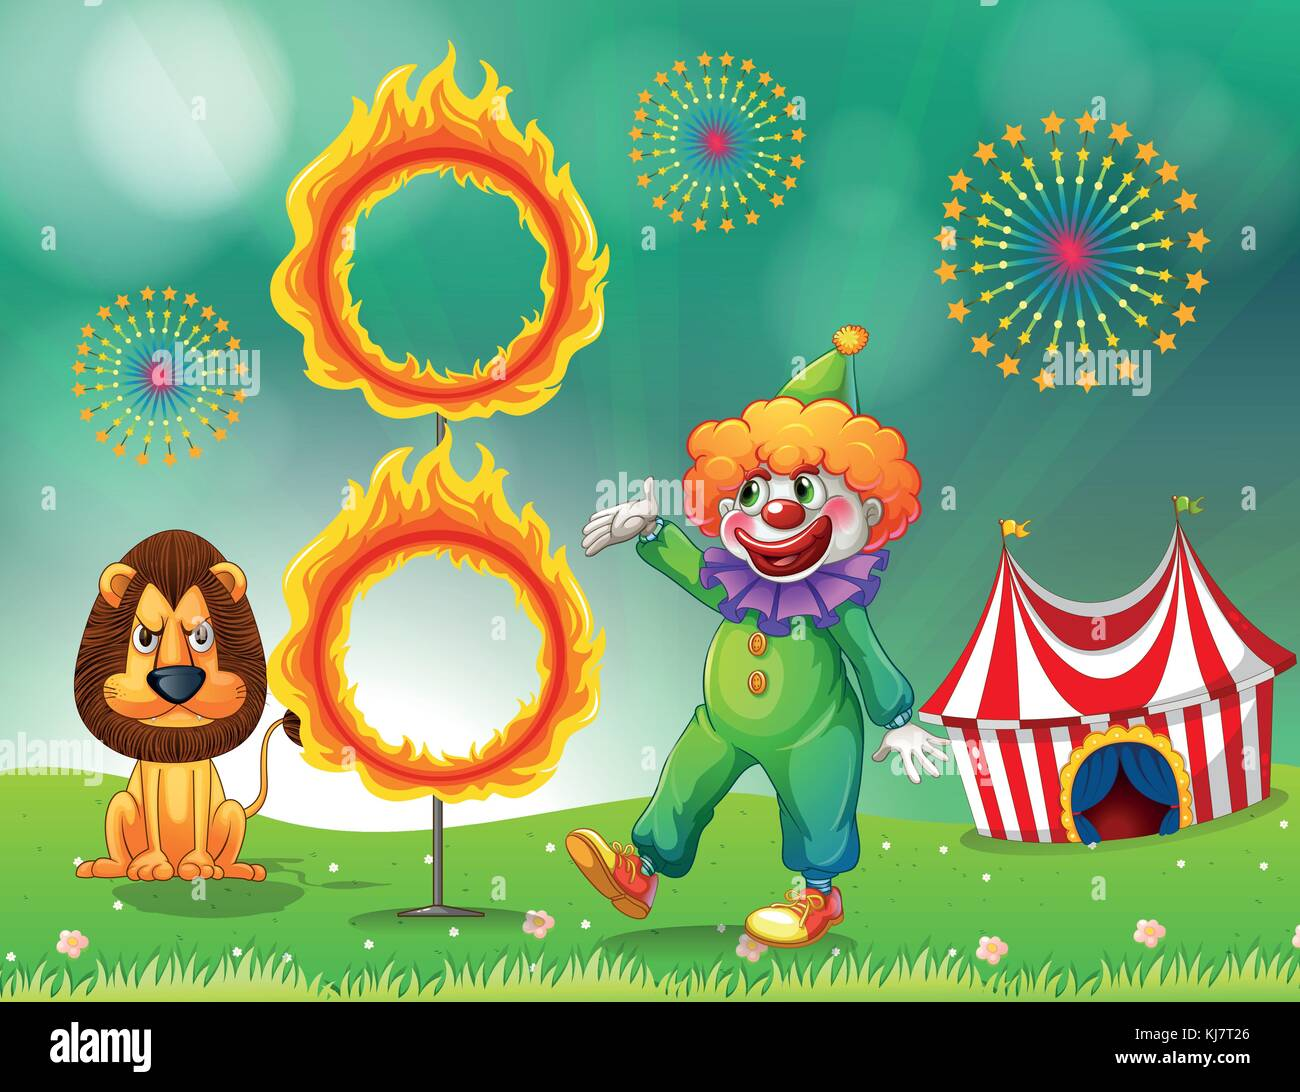 Illustration of a lion and a clown with a ring of fire - Stock Image